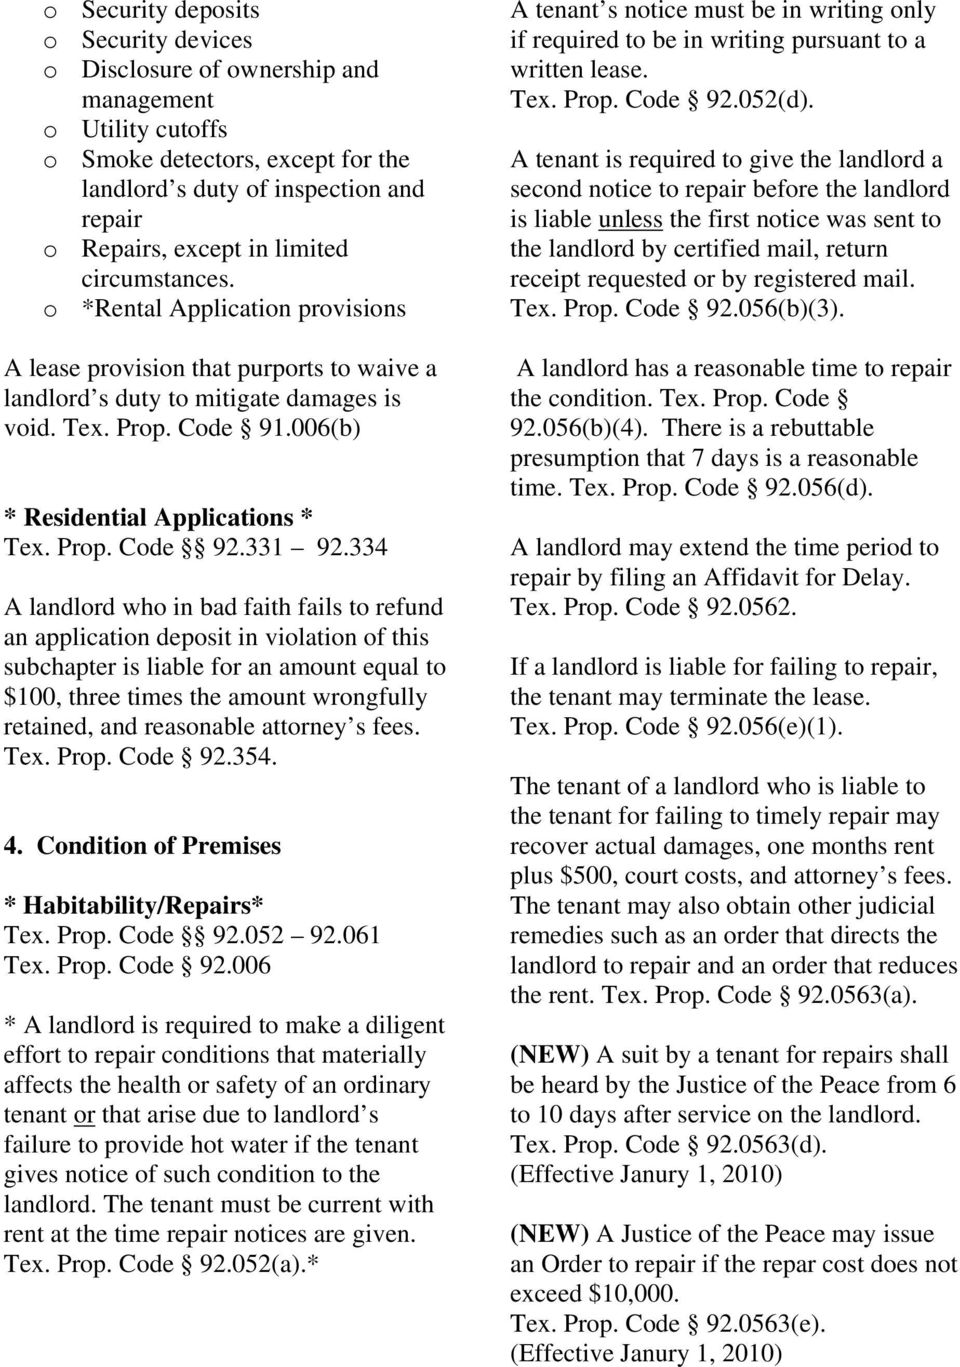 006(b) * Residential Applications * Tex. Prop. Code 92.331 92.